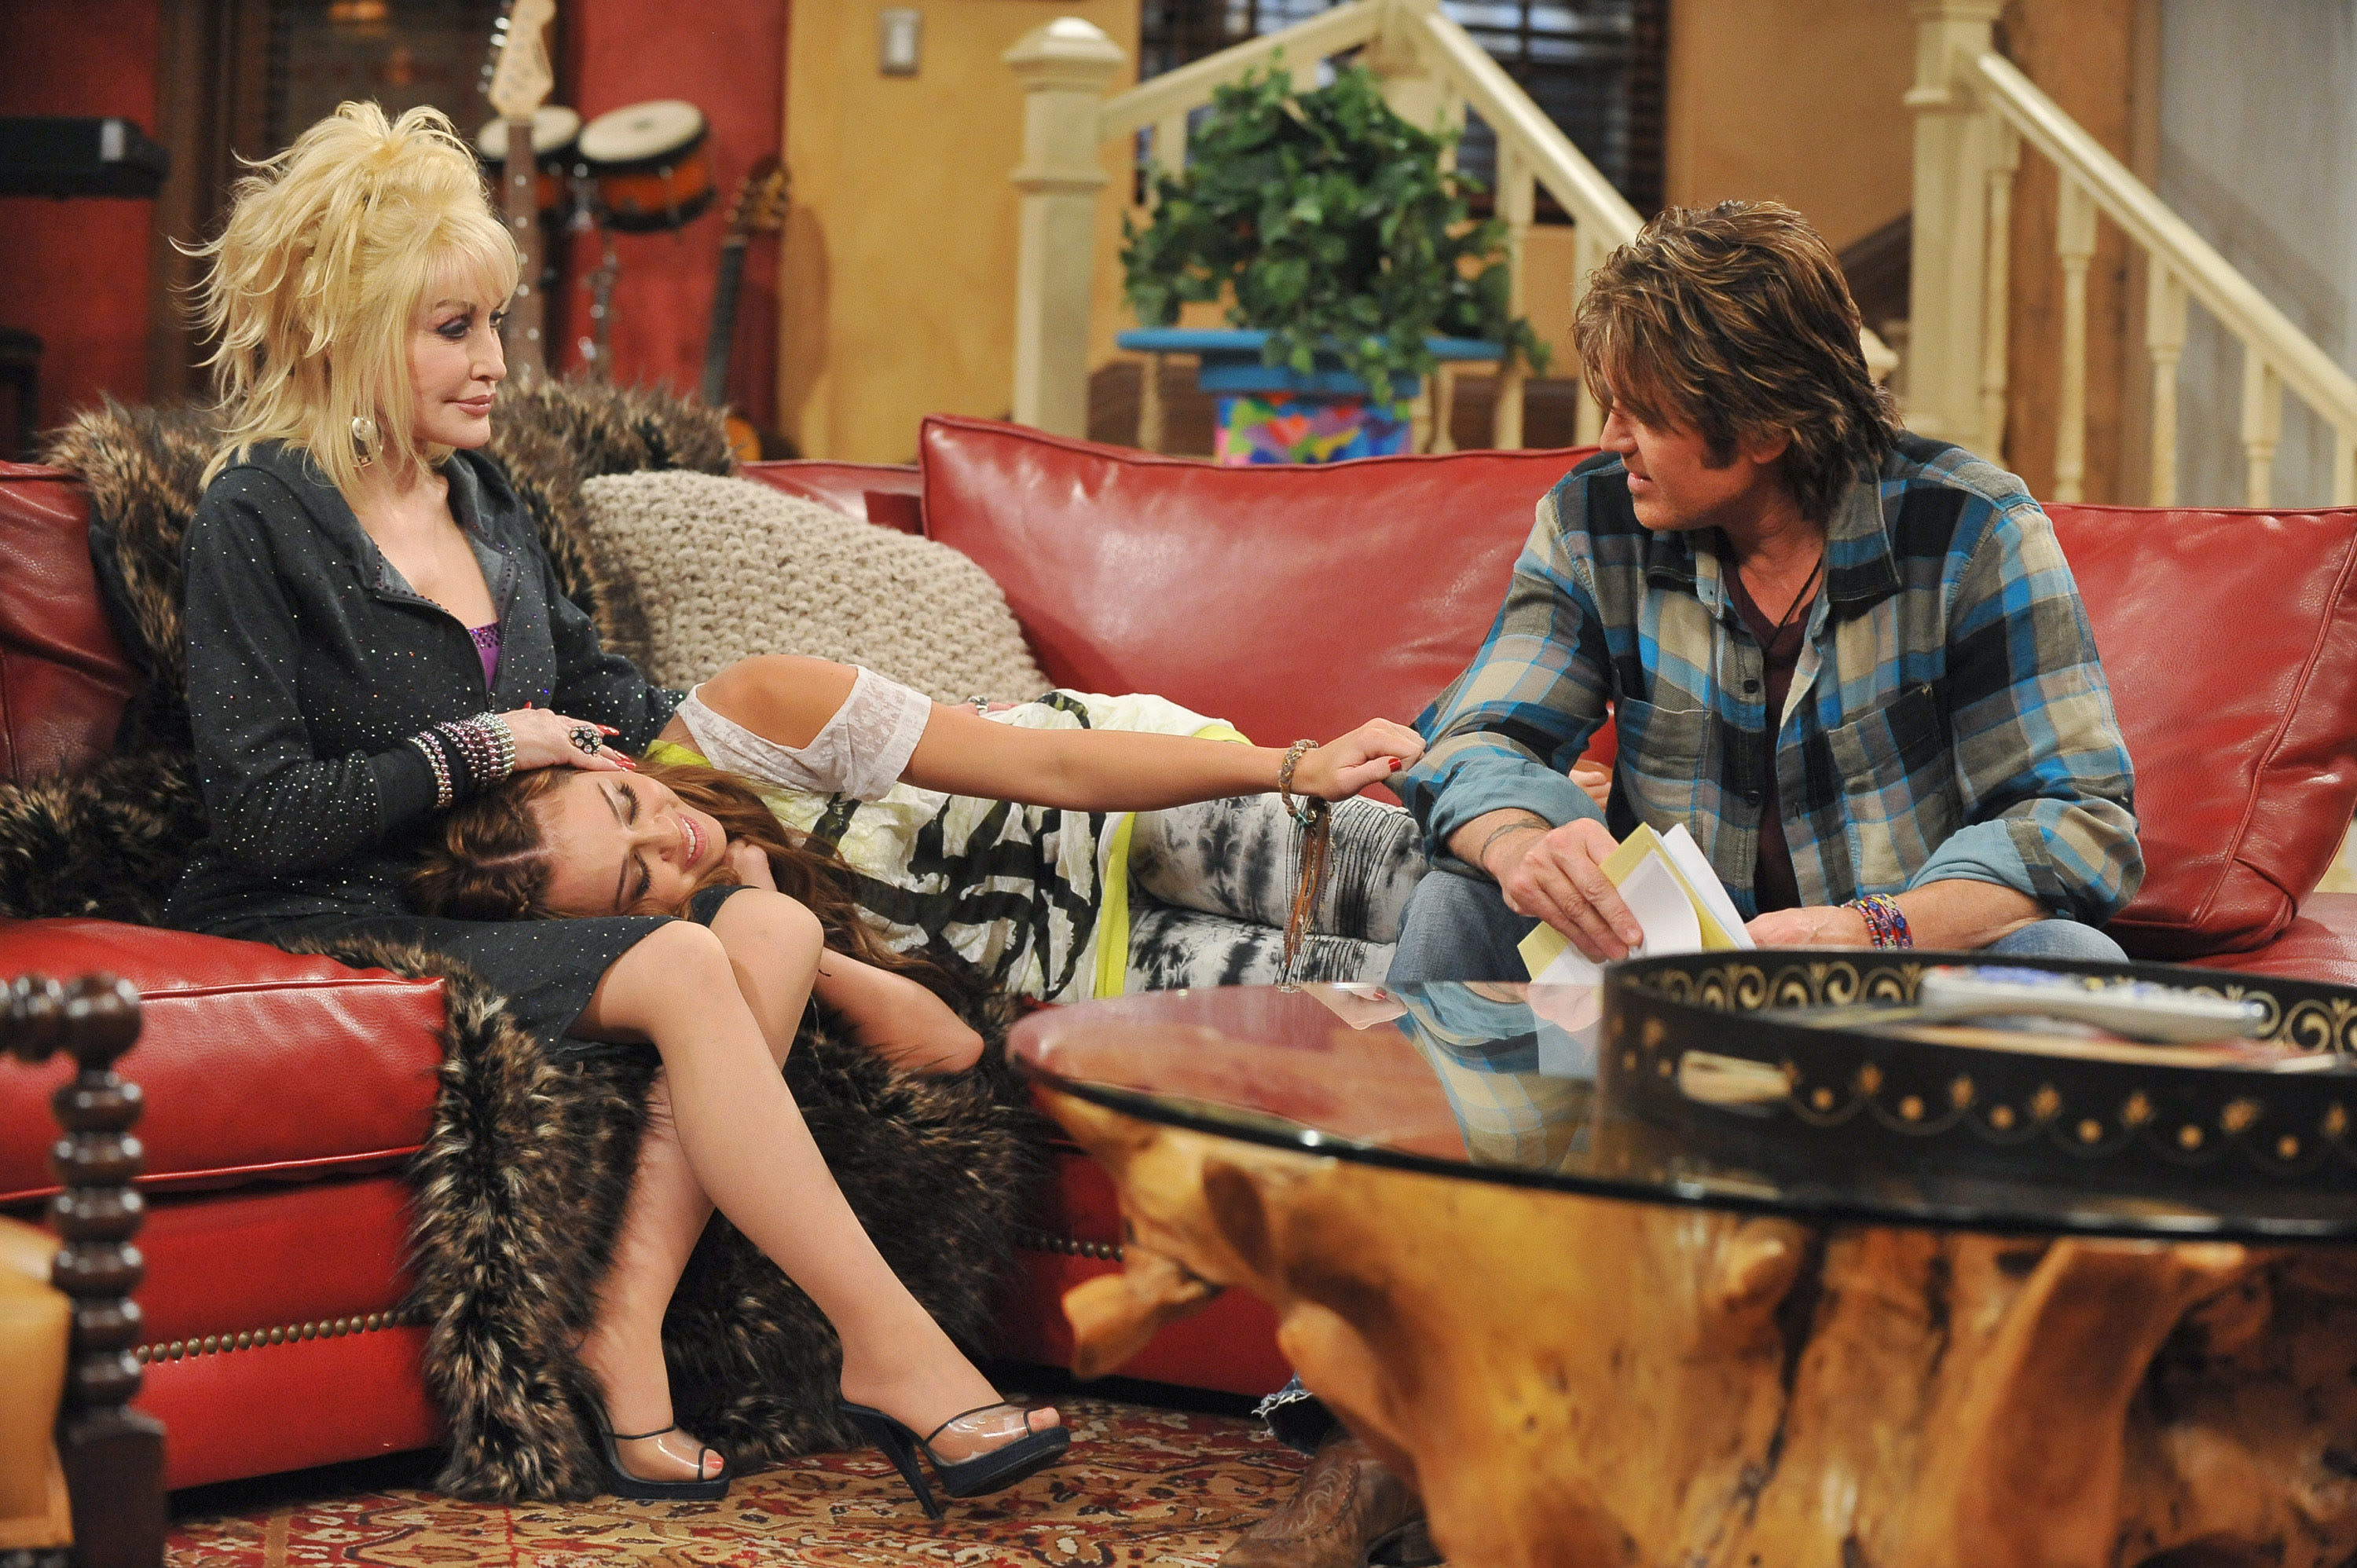 Dolly Parton guest starring on an episode of Hannah Montana